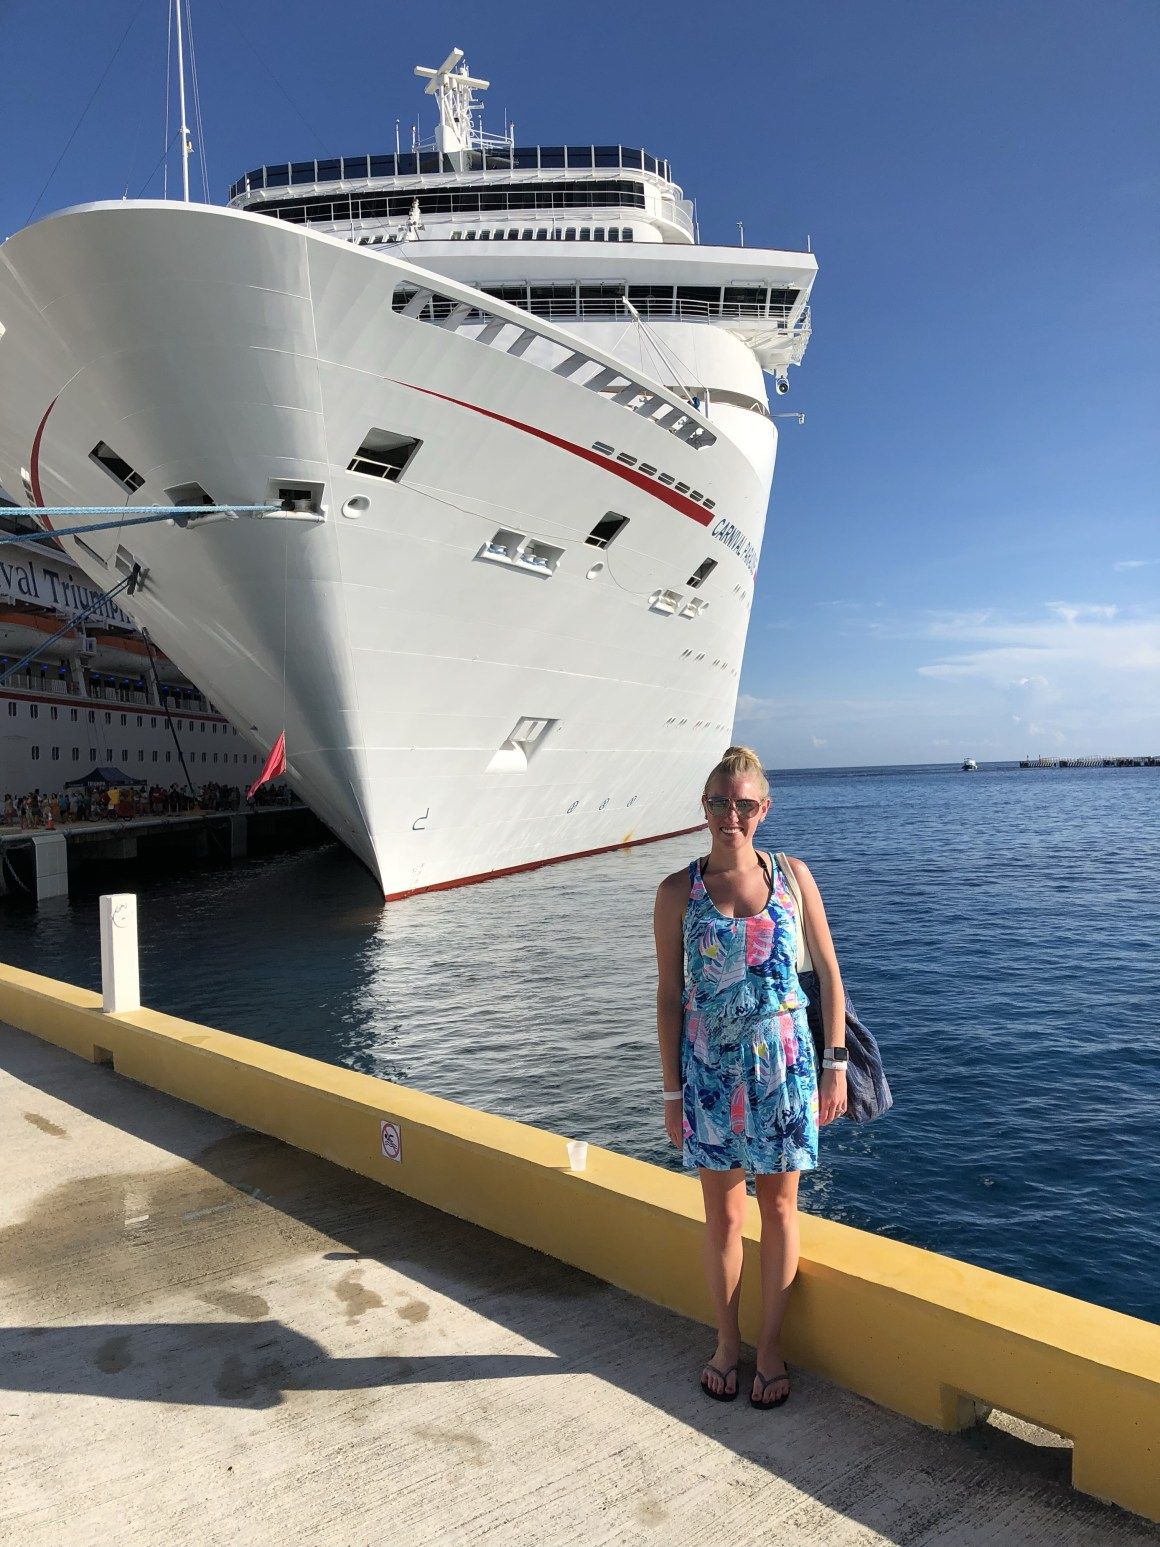 Mexico Cruise 2018: Part 2 (With Images)